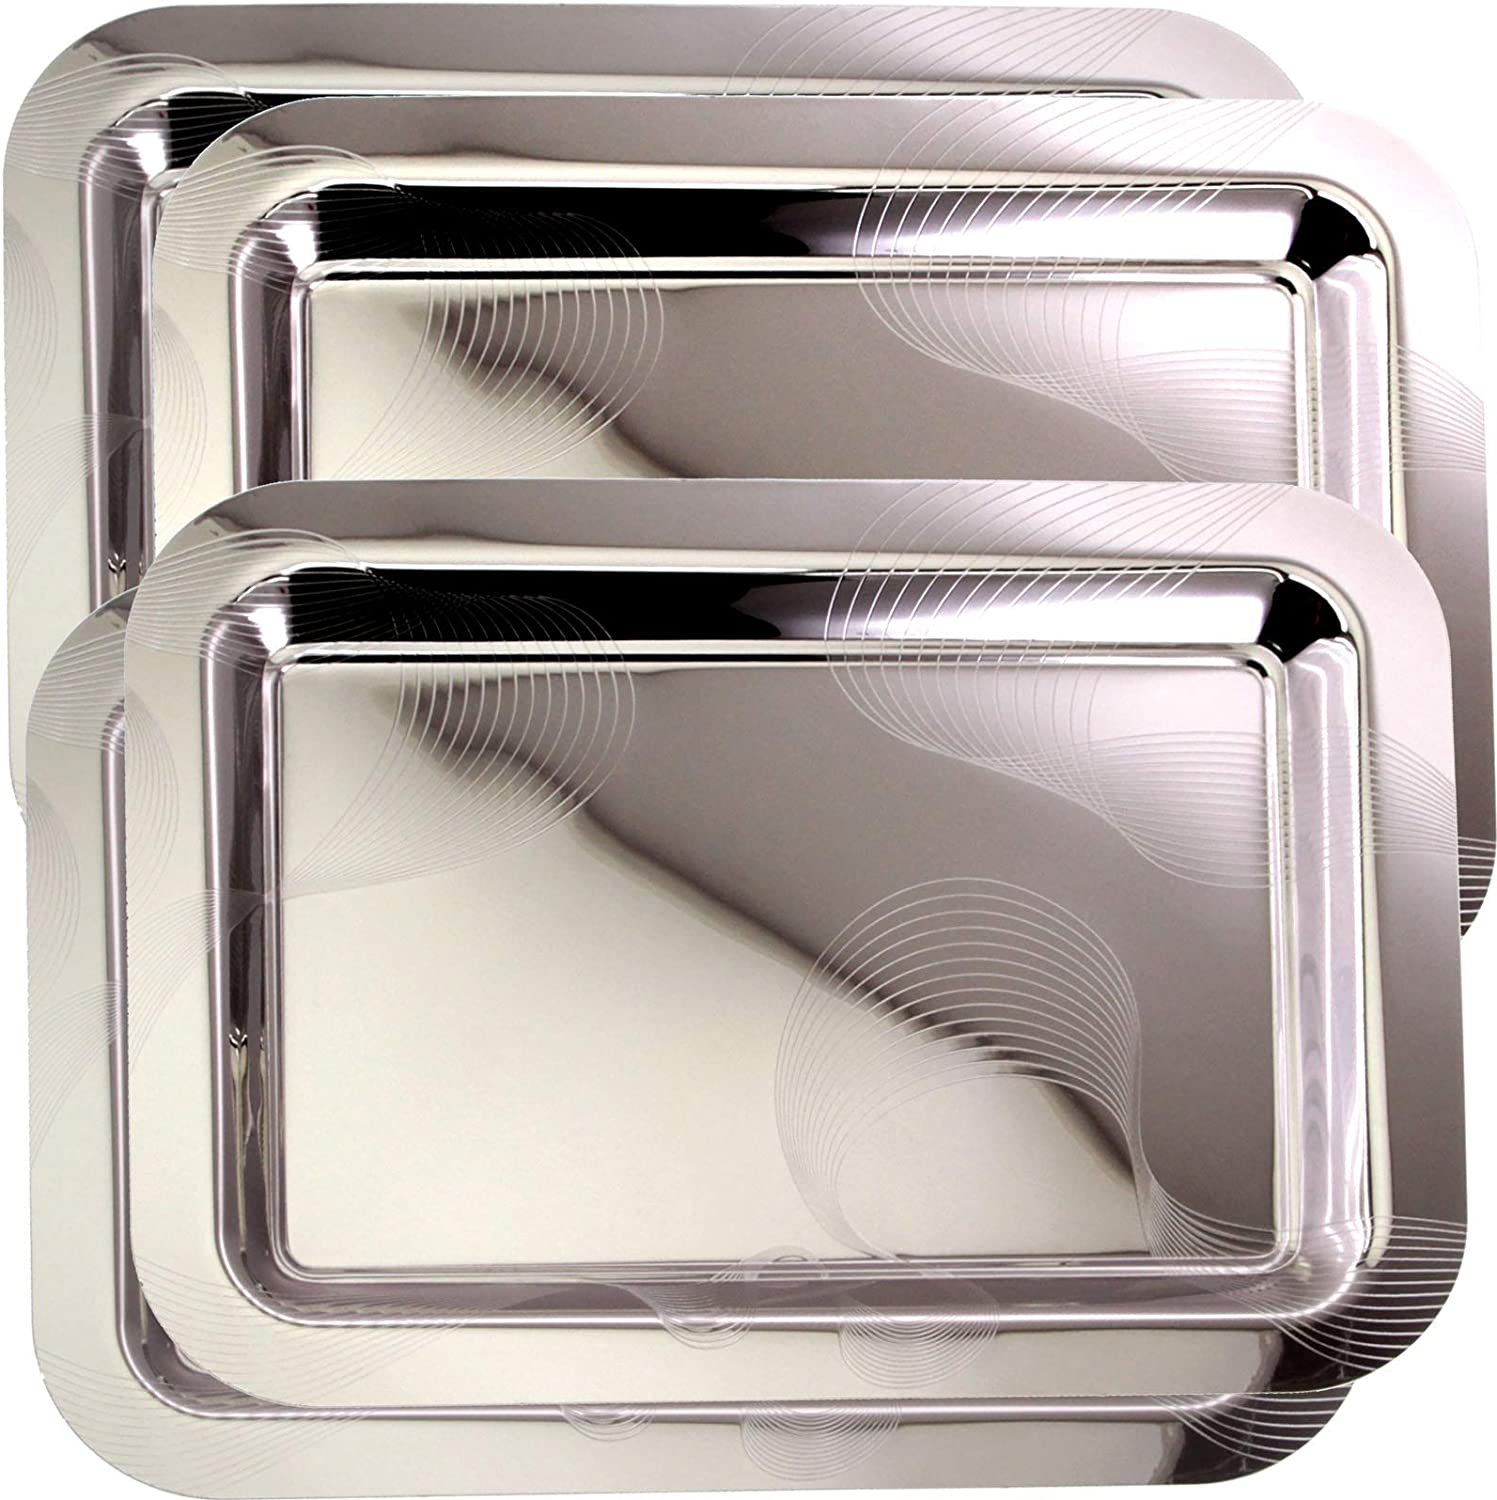 Maro Megastore (Pack of 4) 16.9 Inch x 12.2 Inch Oblong Chrome Plated Serving Tray Stylish Design Line Stripes Engraved Edge Decorative Party Birthday Wedding Dessert Buffet Wine Platter Plate CC-803